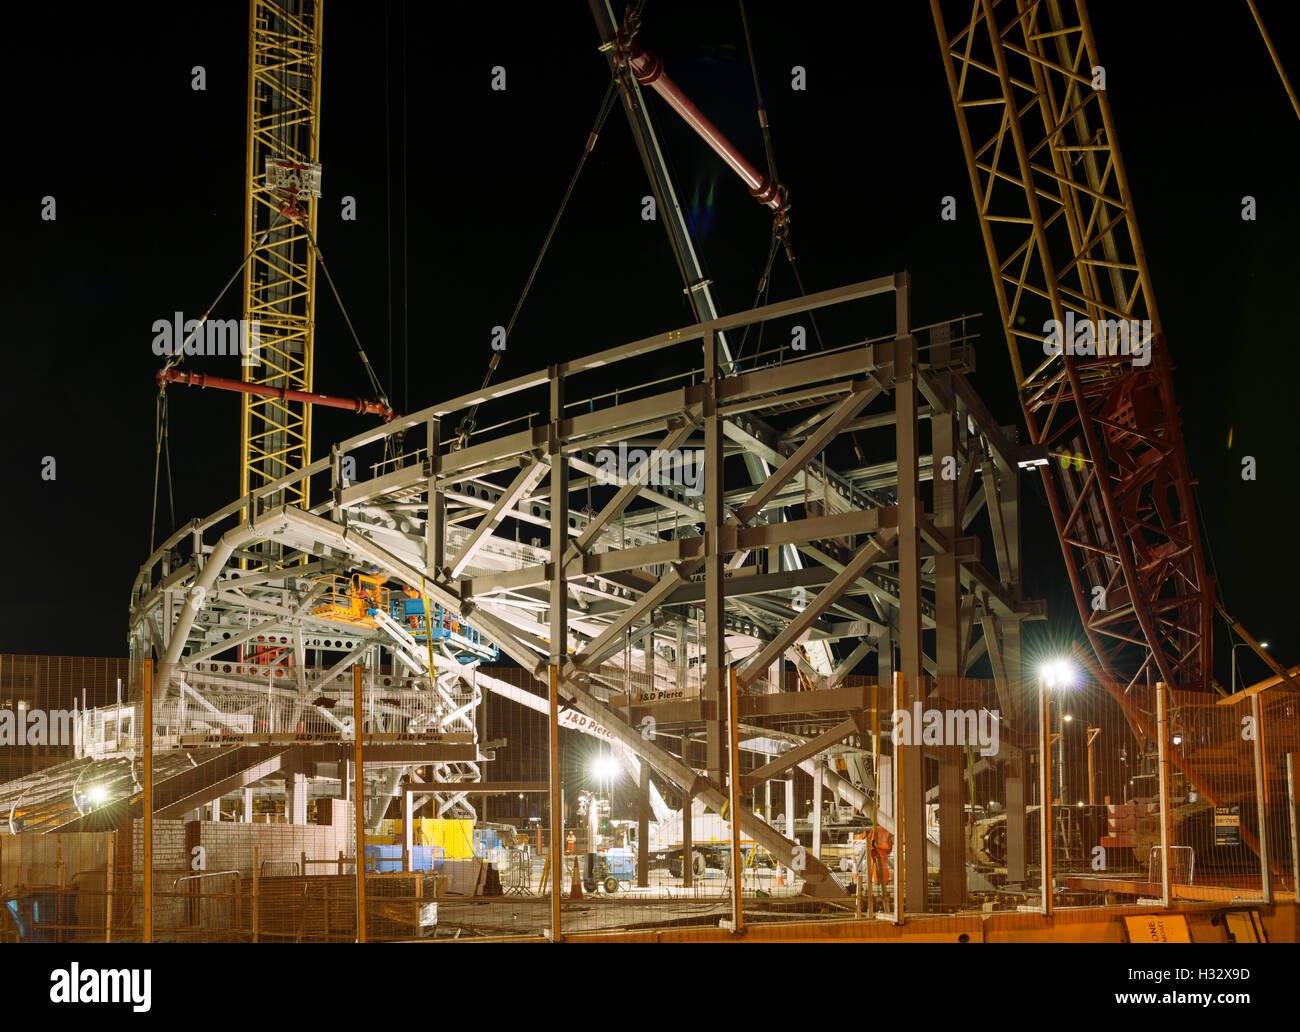 Steelwork arch installation,a major engineering operation,Dundee,UK. Connecting both arch sections together. - Stock Image